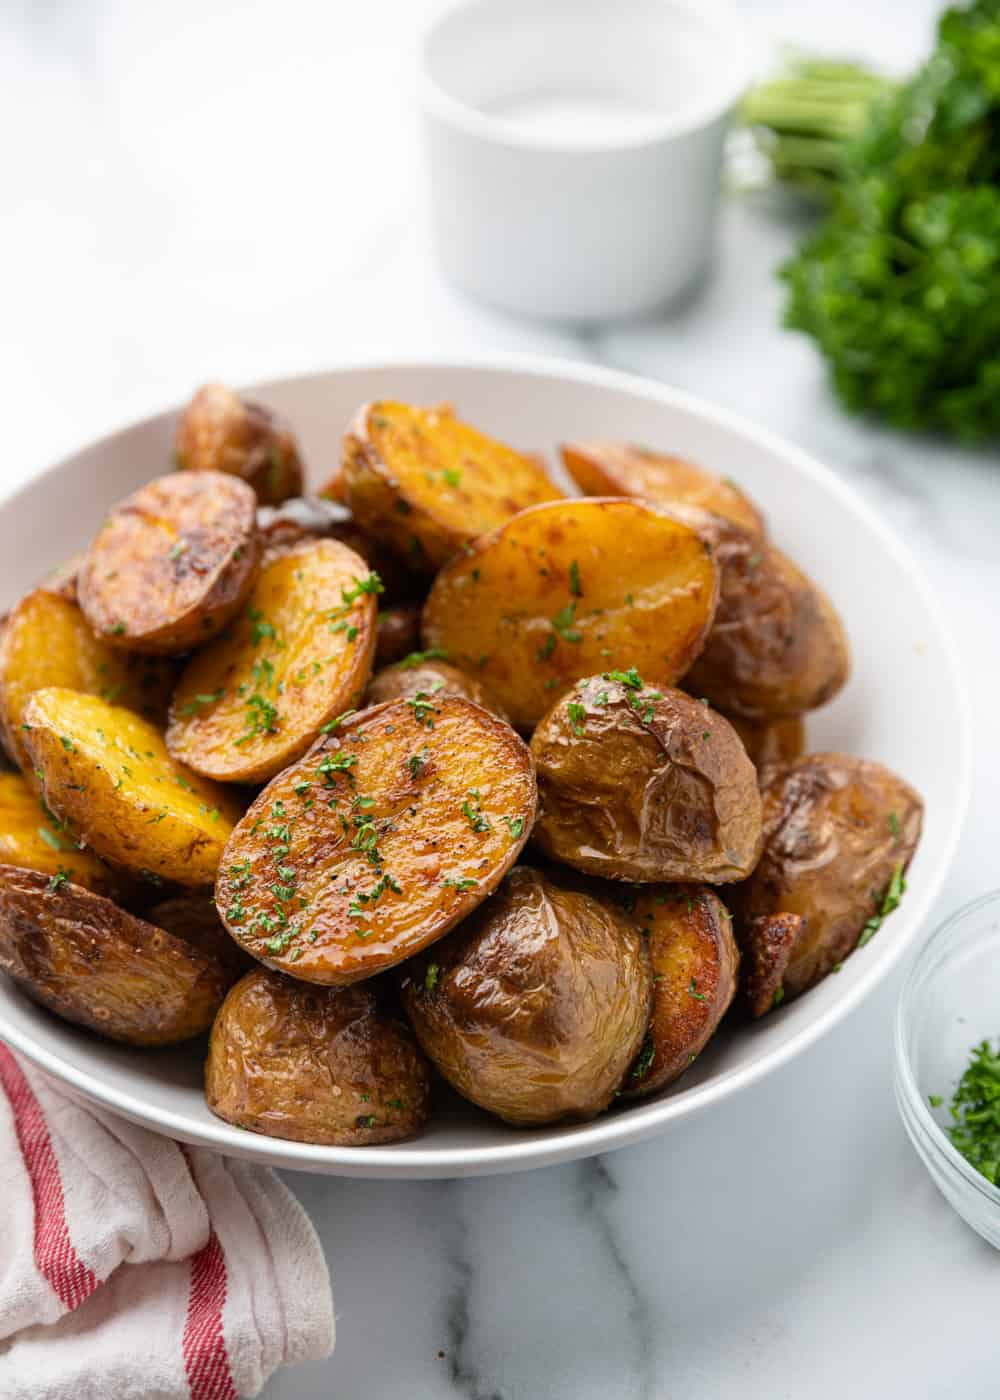 oven roasted potatoes in white bowl with parsley